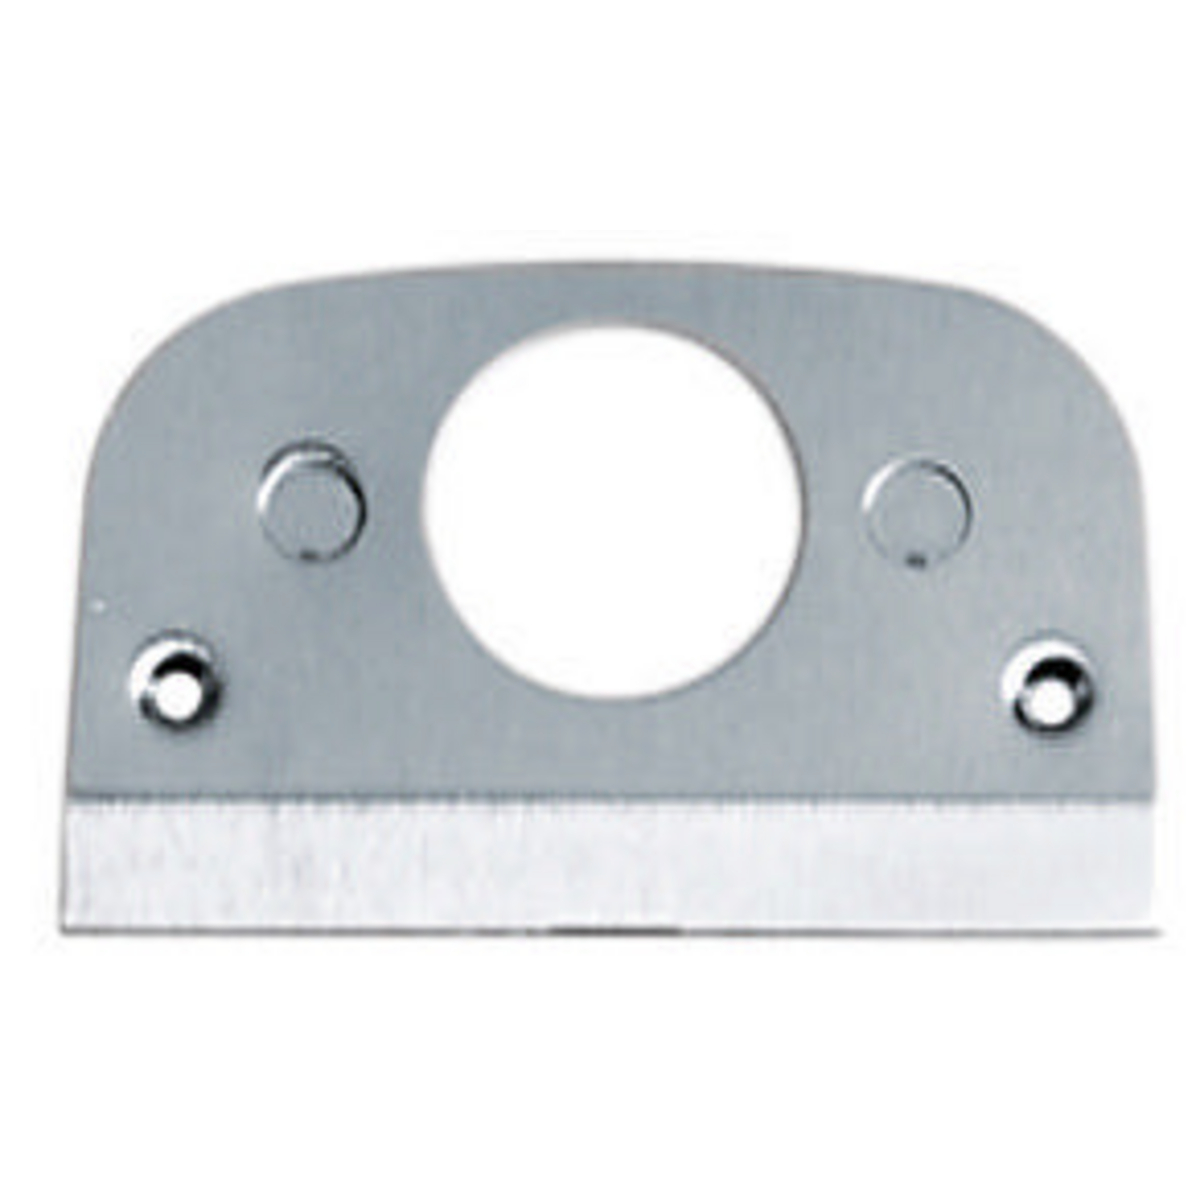 Hubbell SS309S 1.4 Inch Stainless Steel Single Receptacle Face Plate